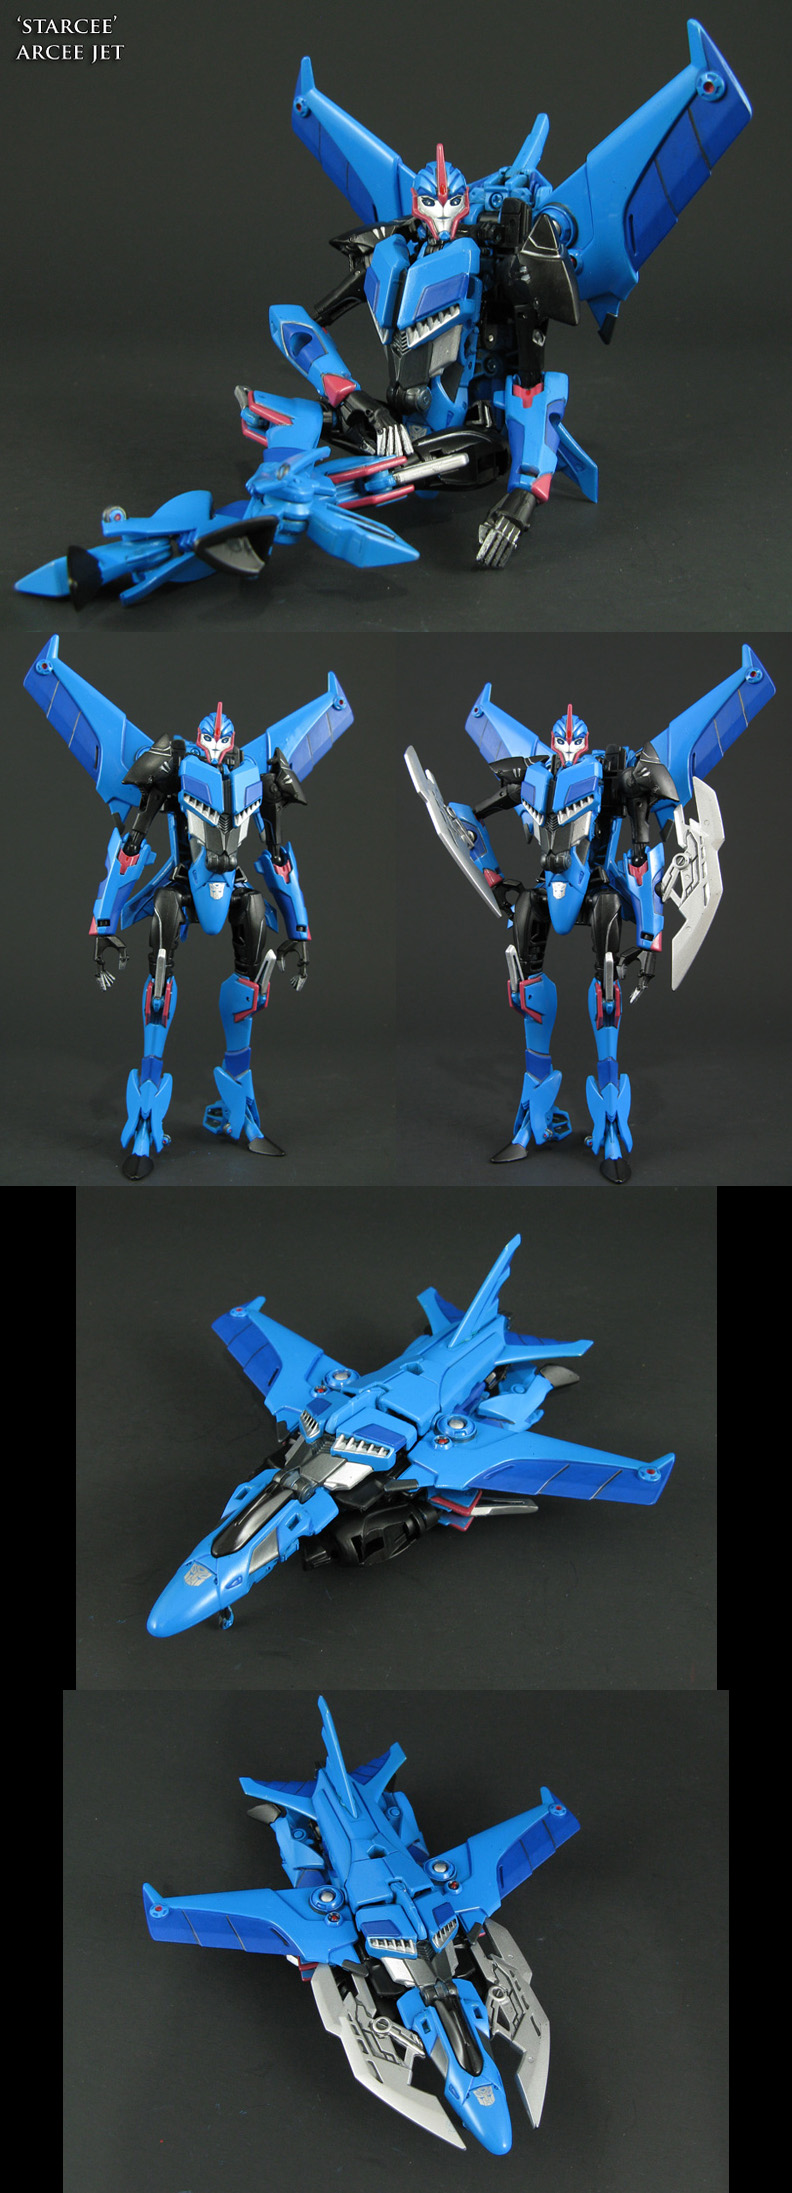 Transformers Starcee custom Arcee jet mode by Jin-Saotome